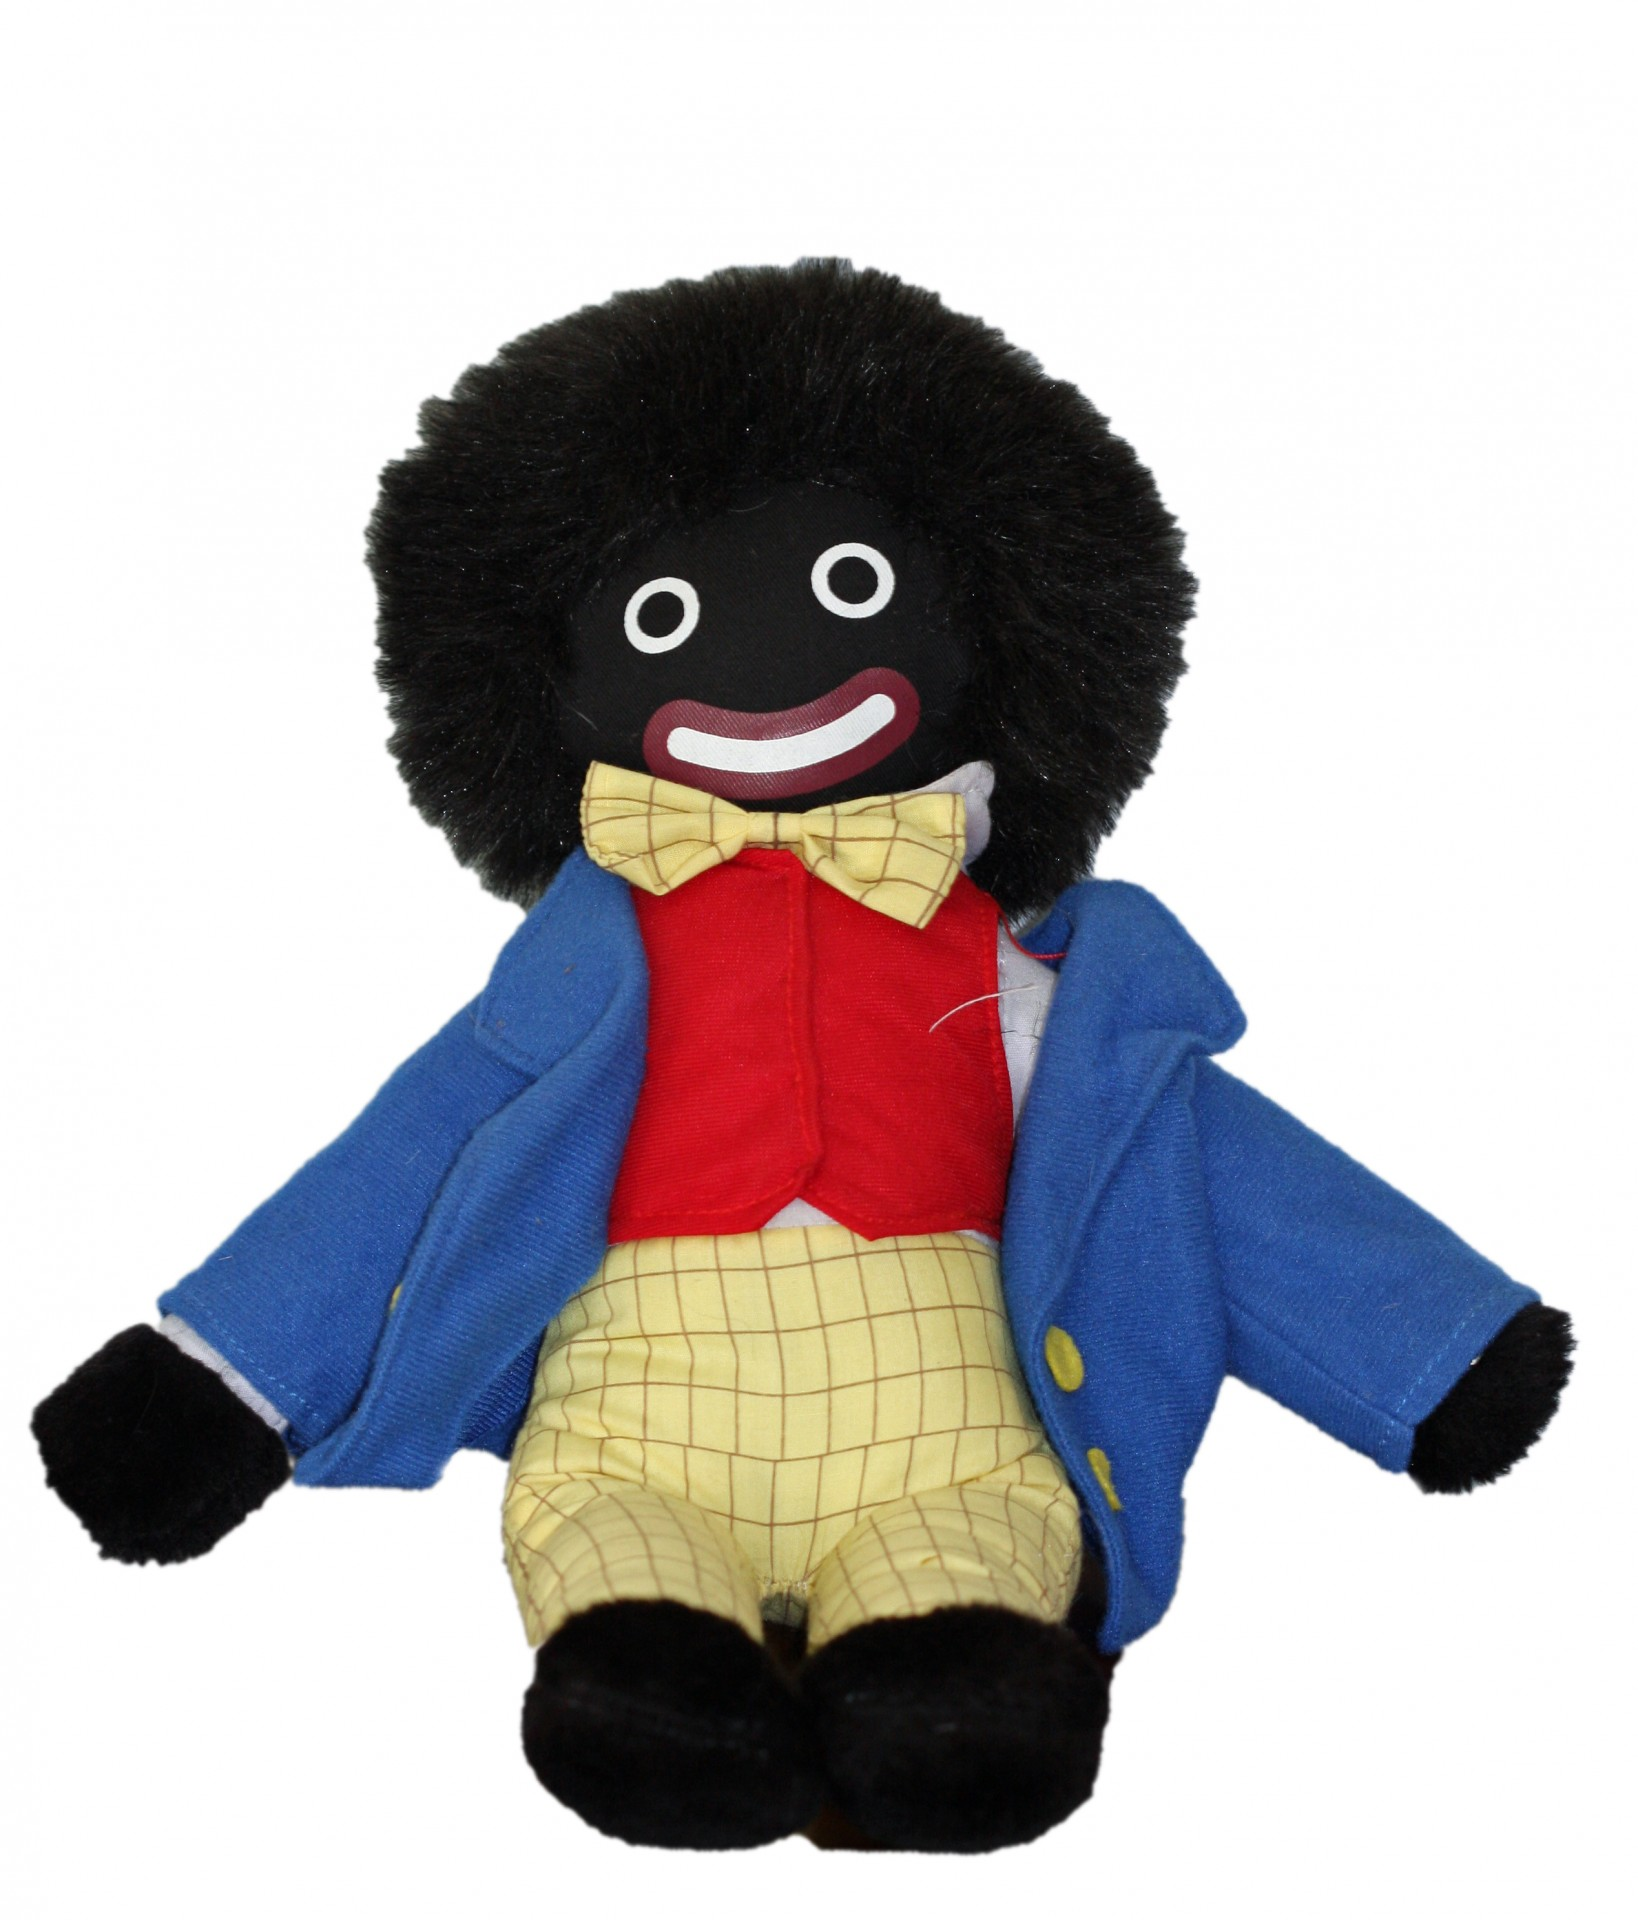 Image result for golliwog